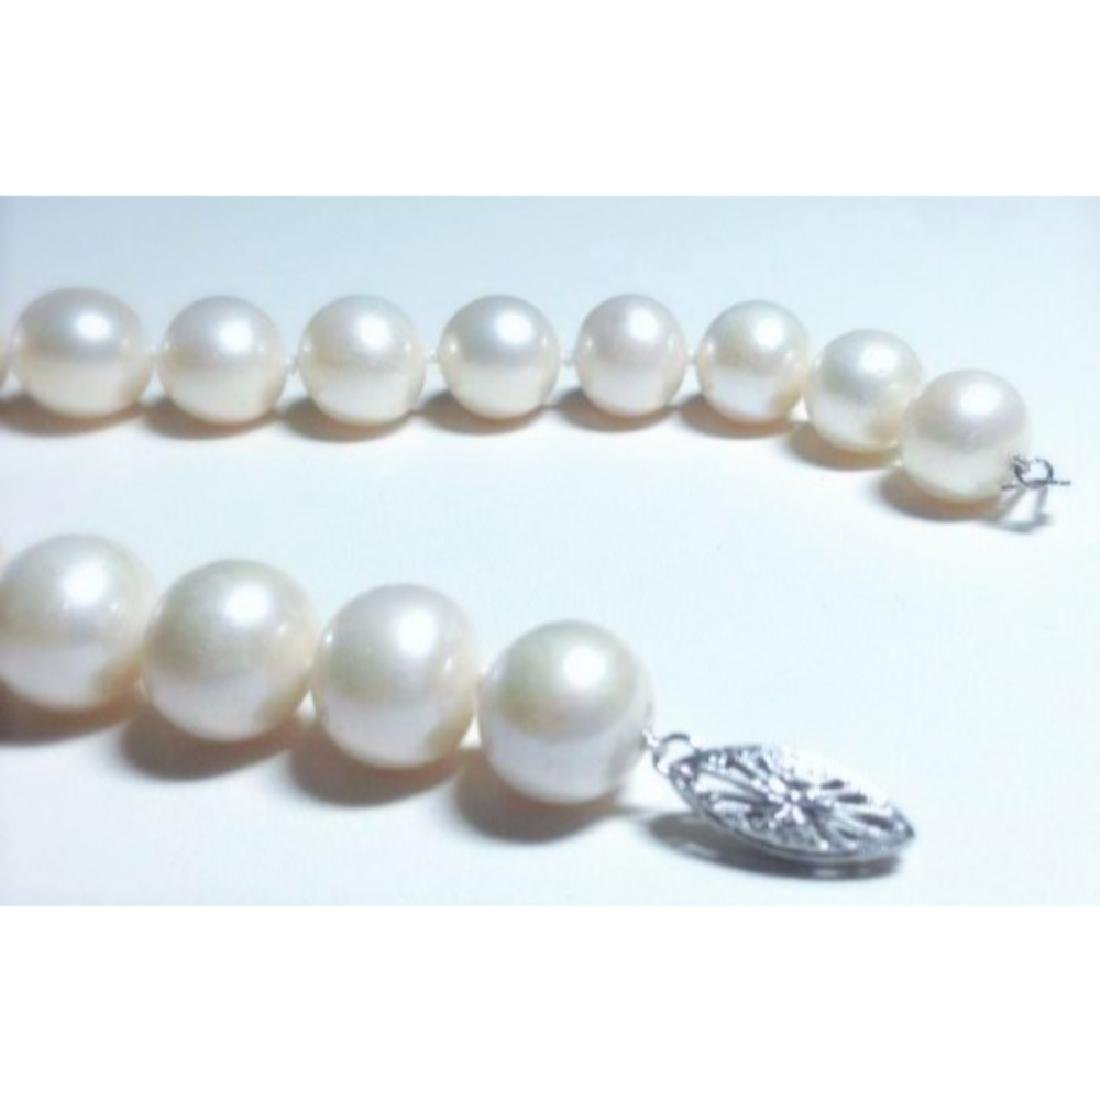 14k White Gold Natural Fresh Water Pearl Necklace - 3